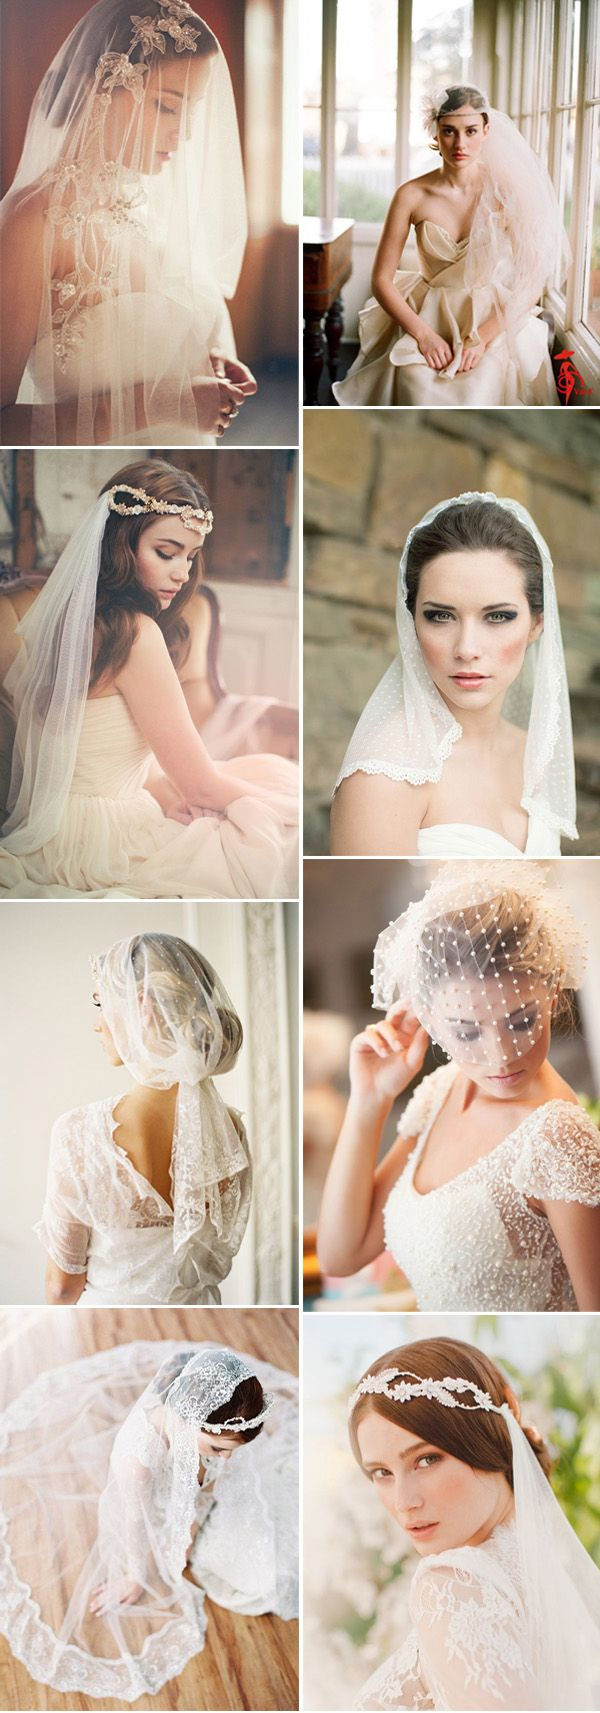 39 stunning wedding veil ideas for 2016 bridal hairstyles